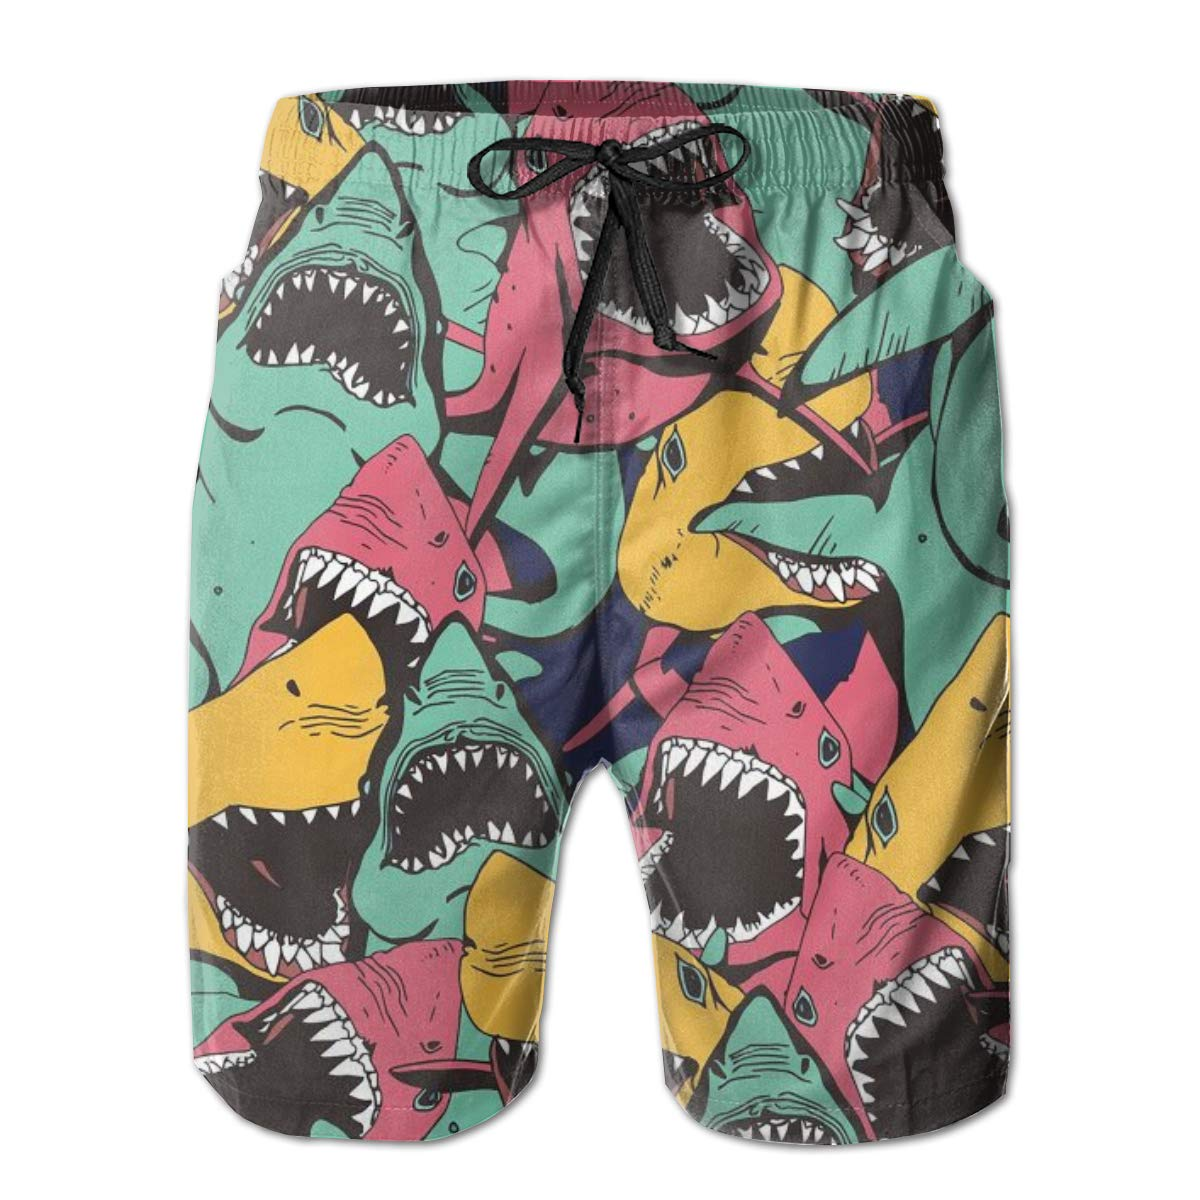 Mens Swim Trunks Colorful Shark Quick Dry Beach Board Shorts with Mesh Lining